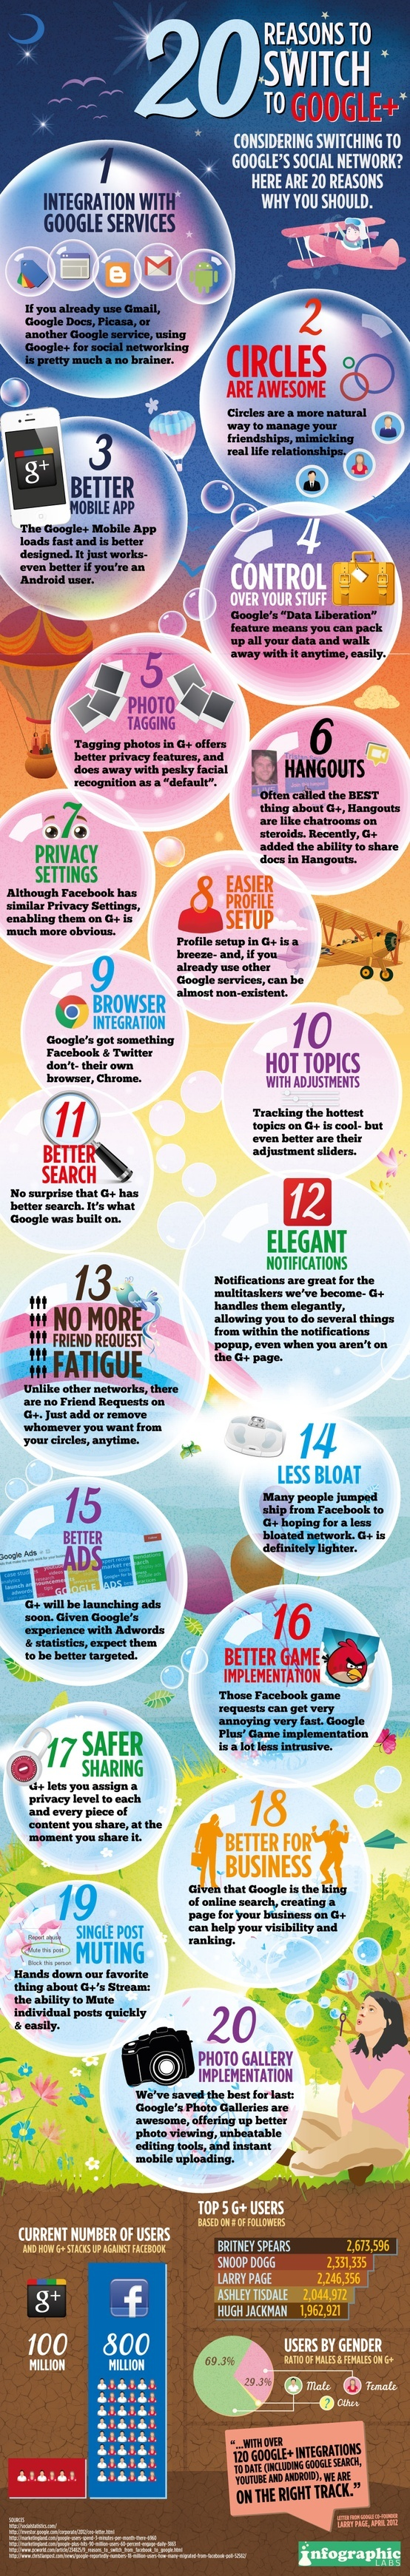 20 reasons to switch to Google